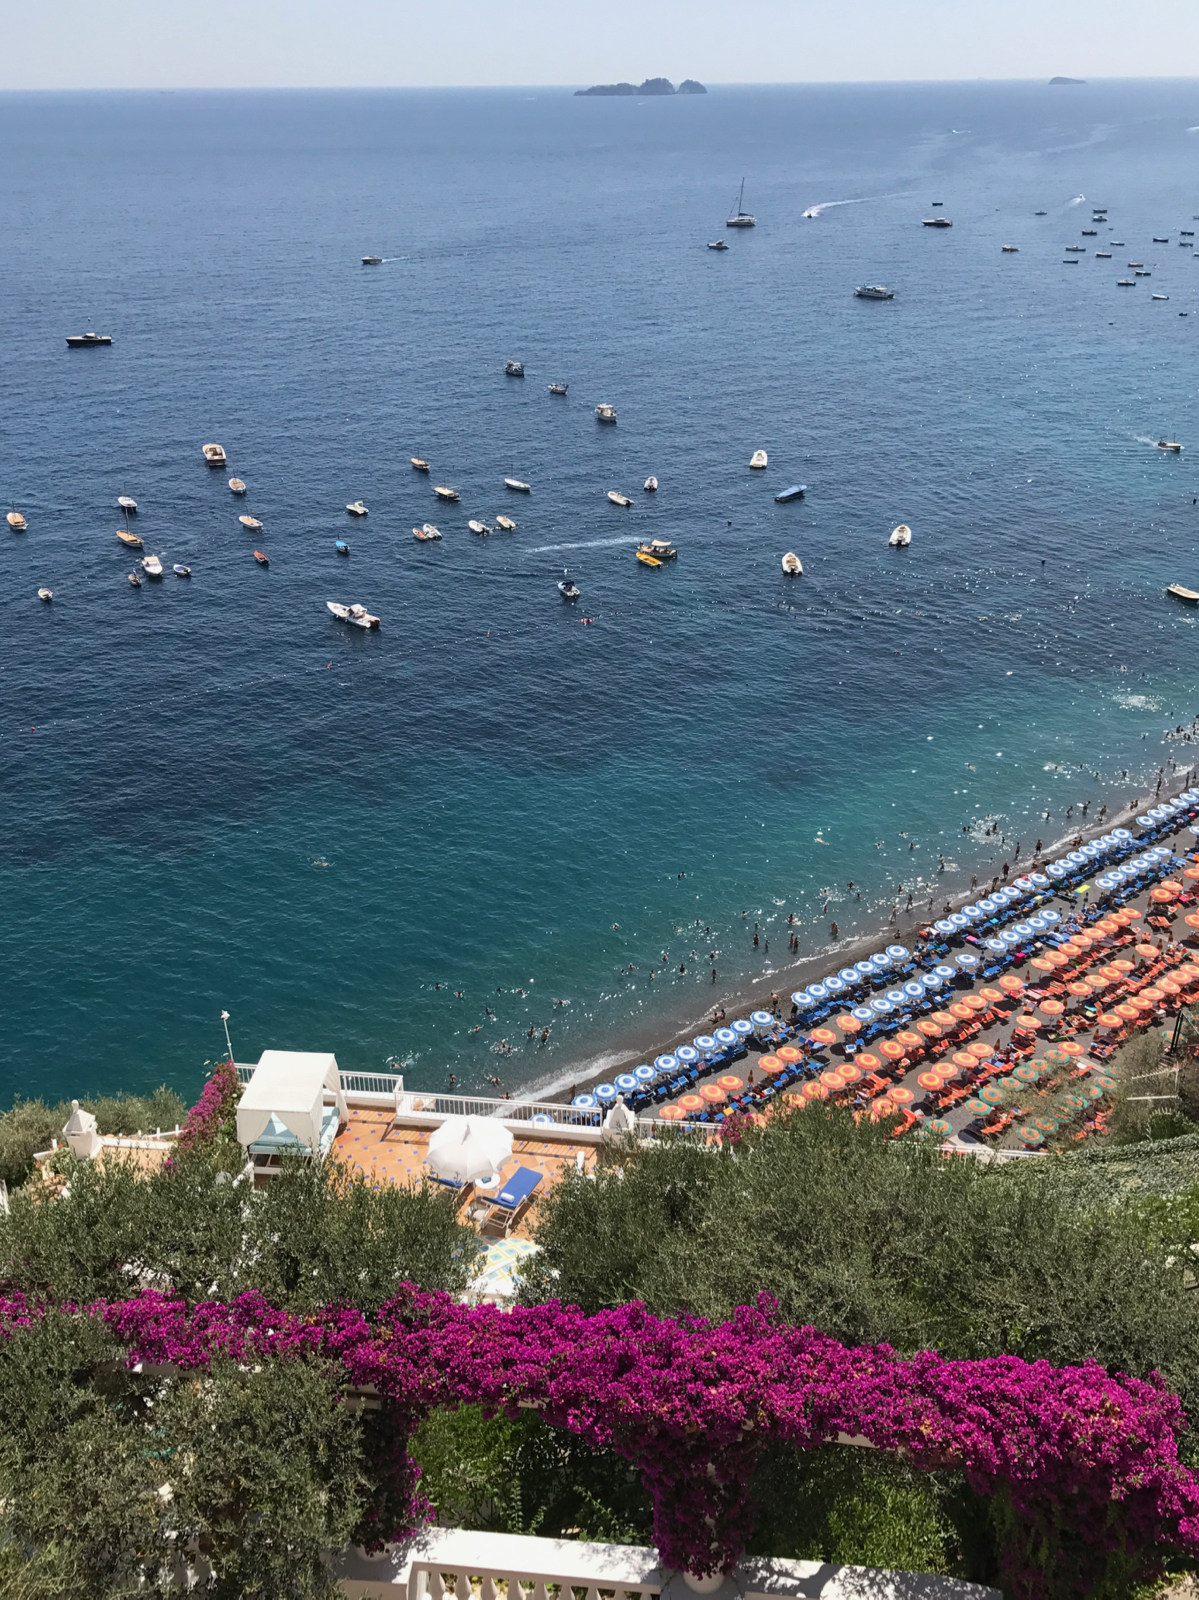 Beach Club in Positano, Amalfi Coast, Italy travel guide, What to do in Positano